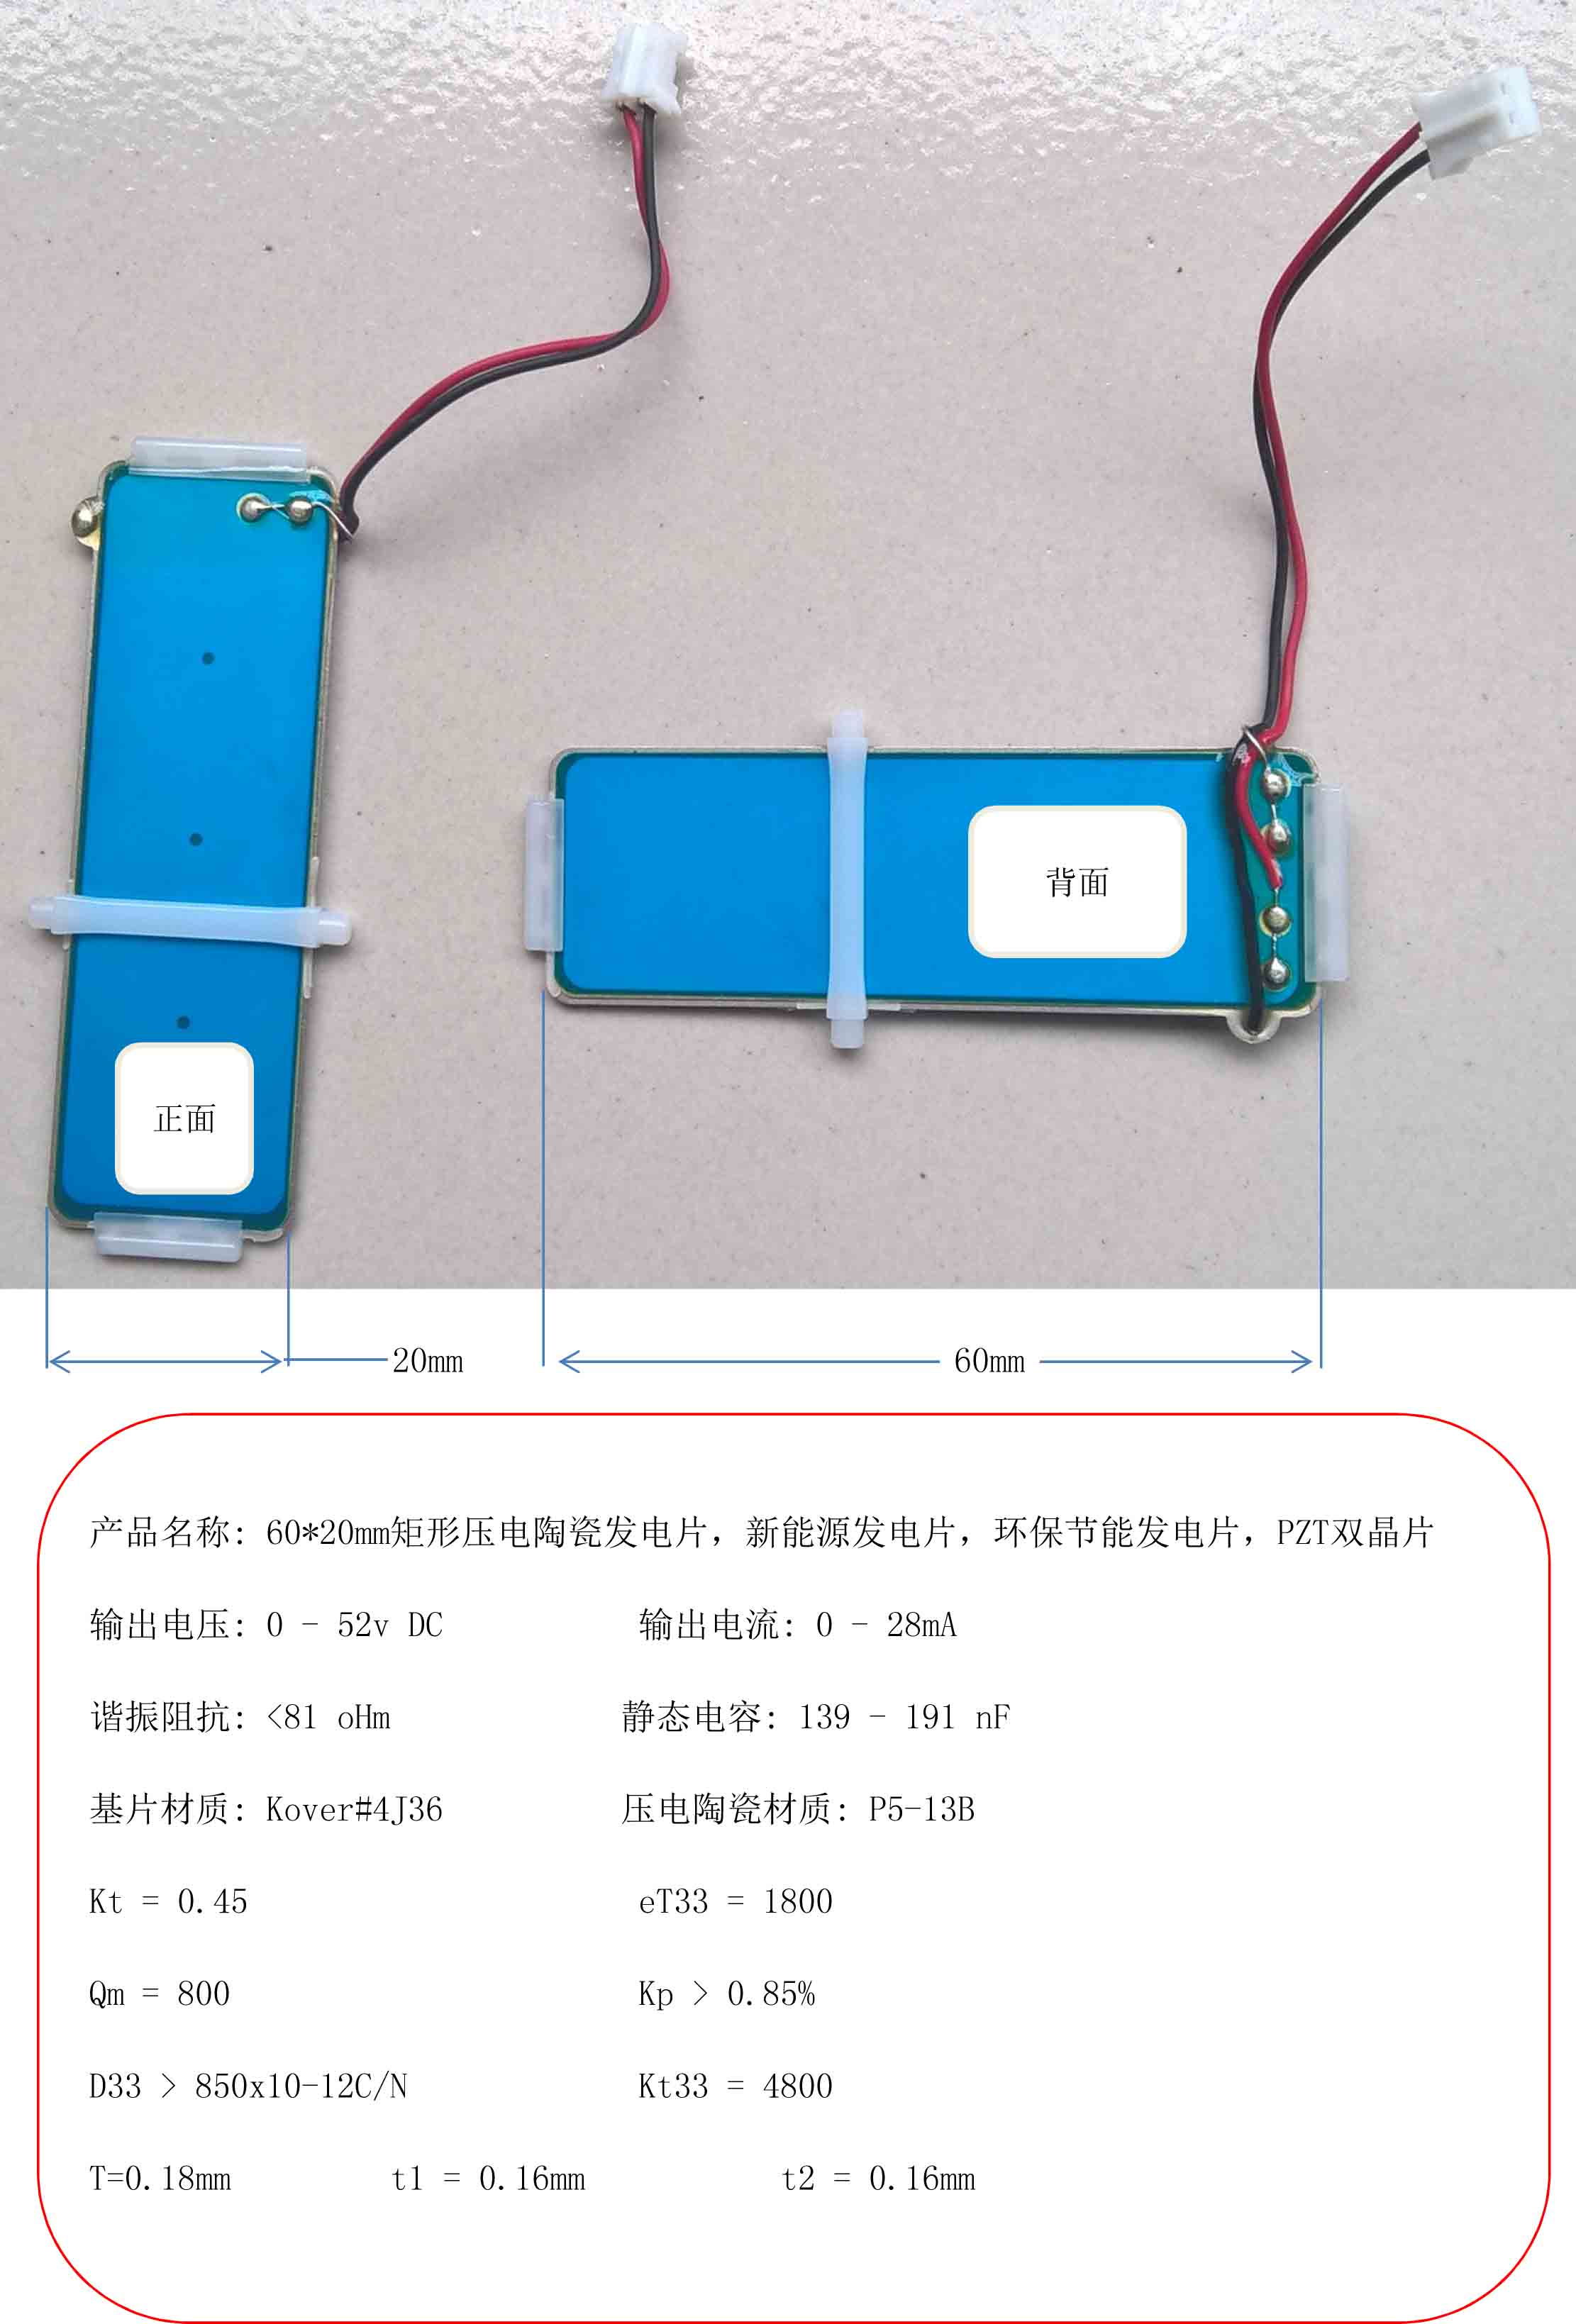 60*20mm rectangular piezoelectric ceramic power generation chip of new energy power generation 10 95mm piezoelectric ceramic chip